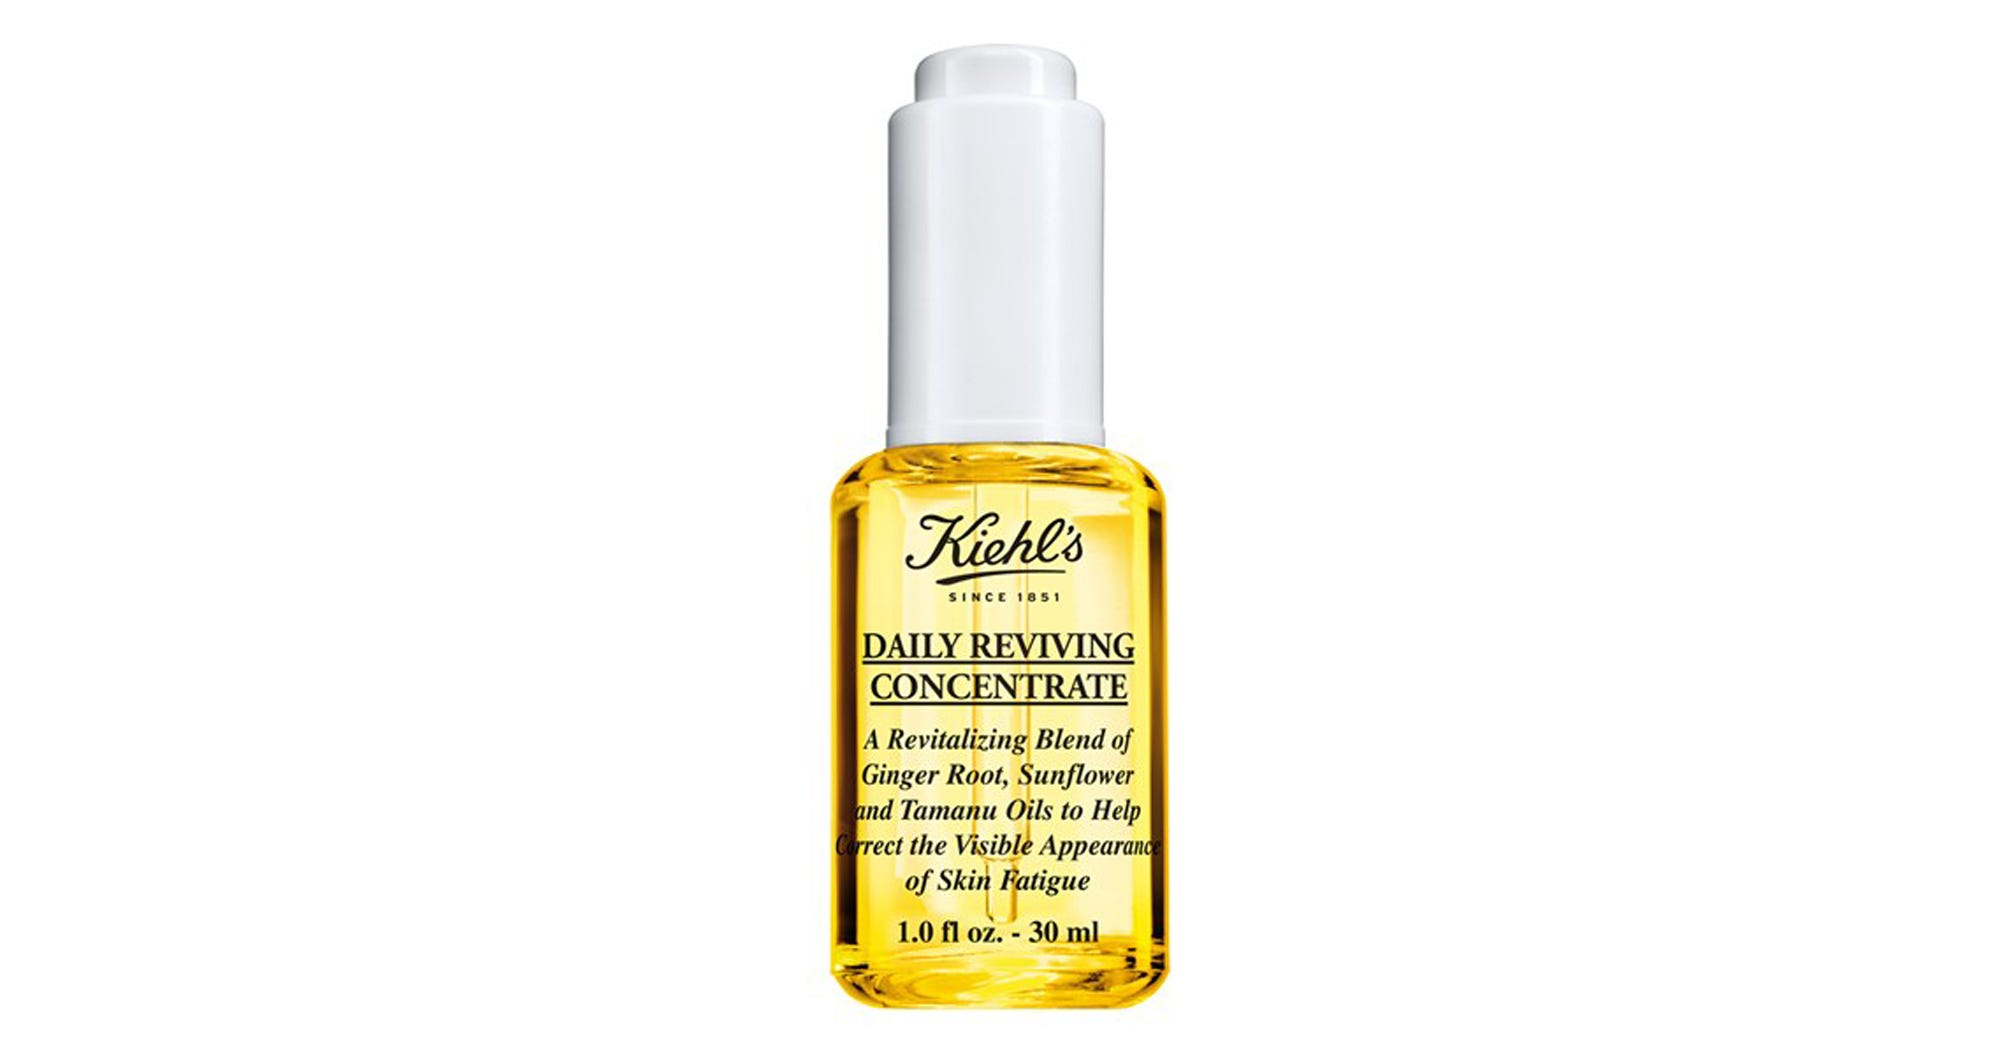 Daily Reviving Concentrate by Kiehls #4